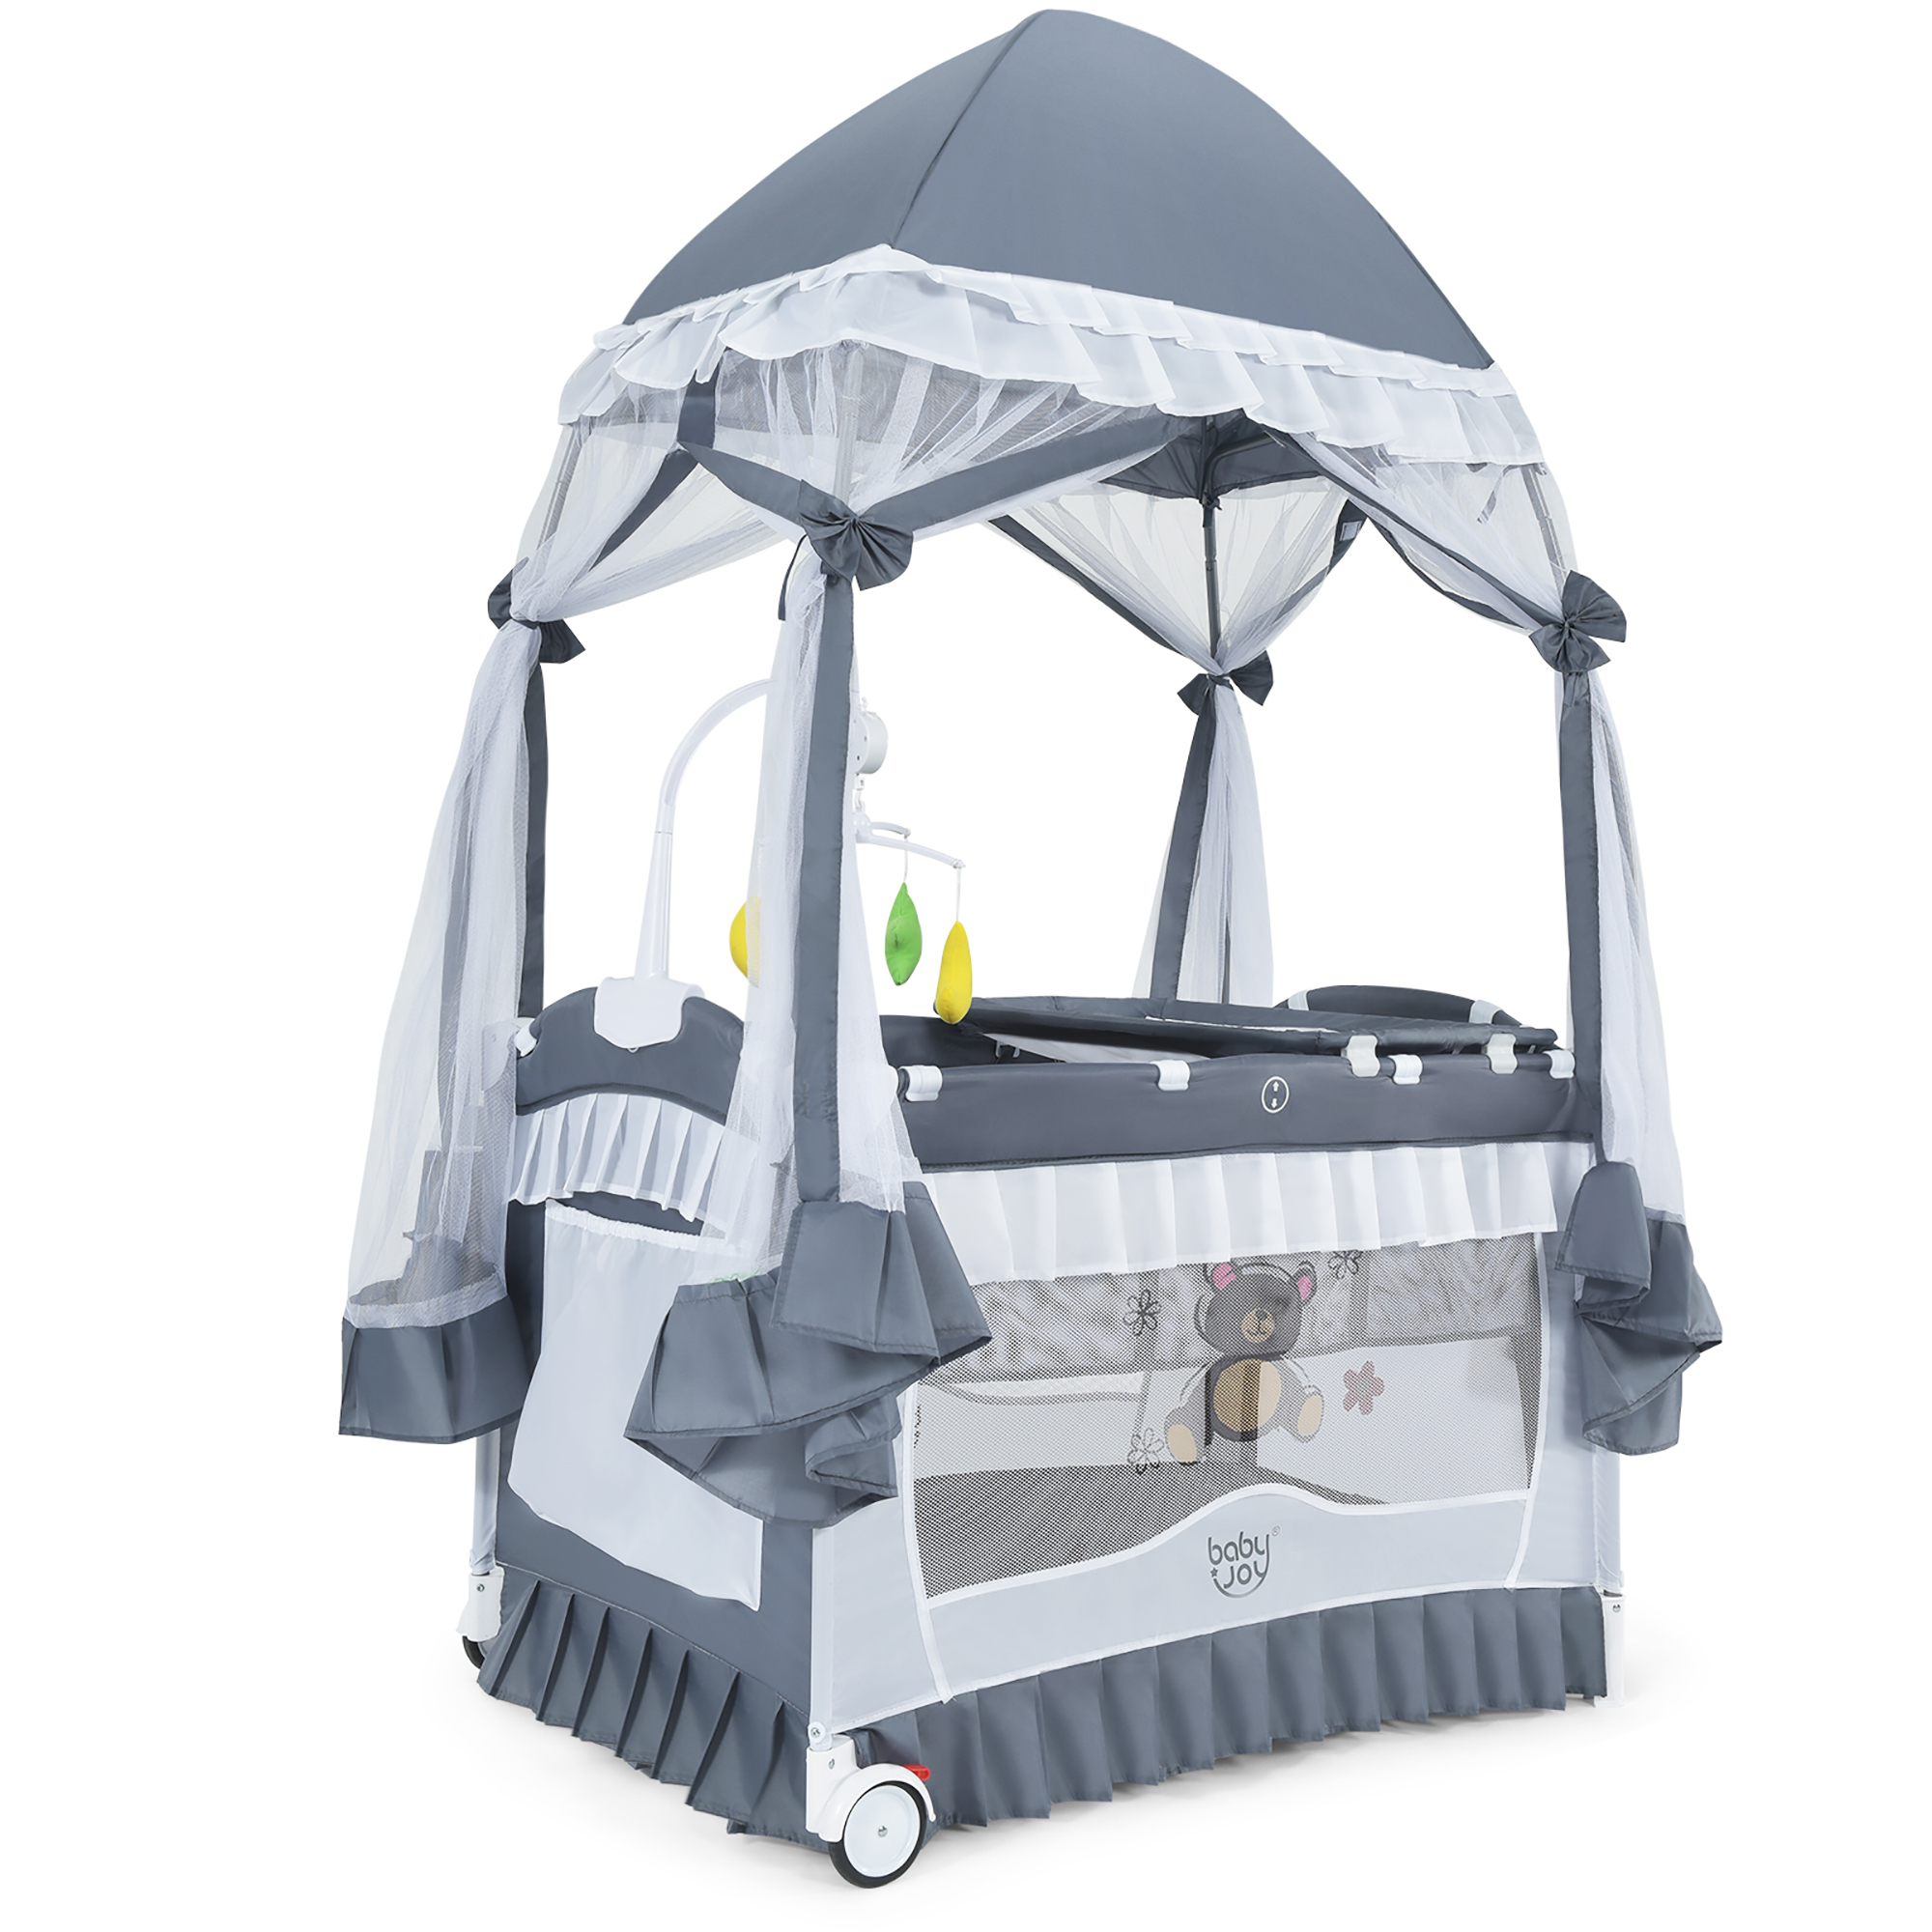 New Upgraded Foldable Baby Bed Cartoon Doodle Infant Sleeper with Awning and Mosquito Net Surpcos 4 in 1 Portable Bassinet